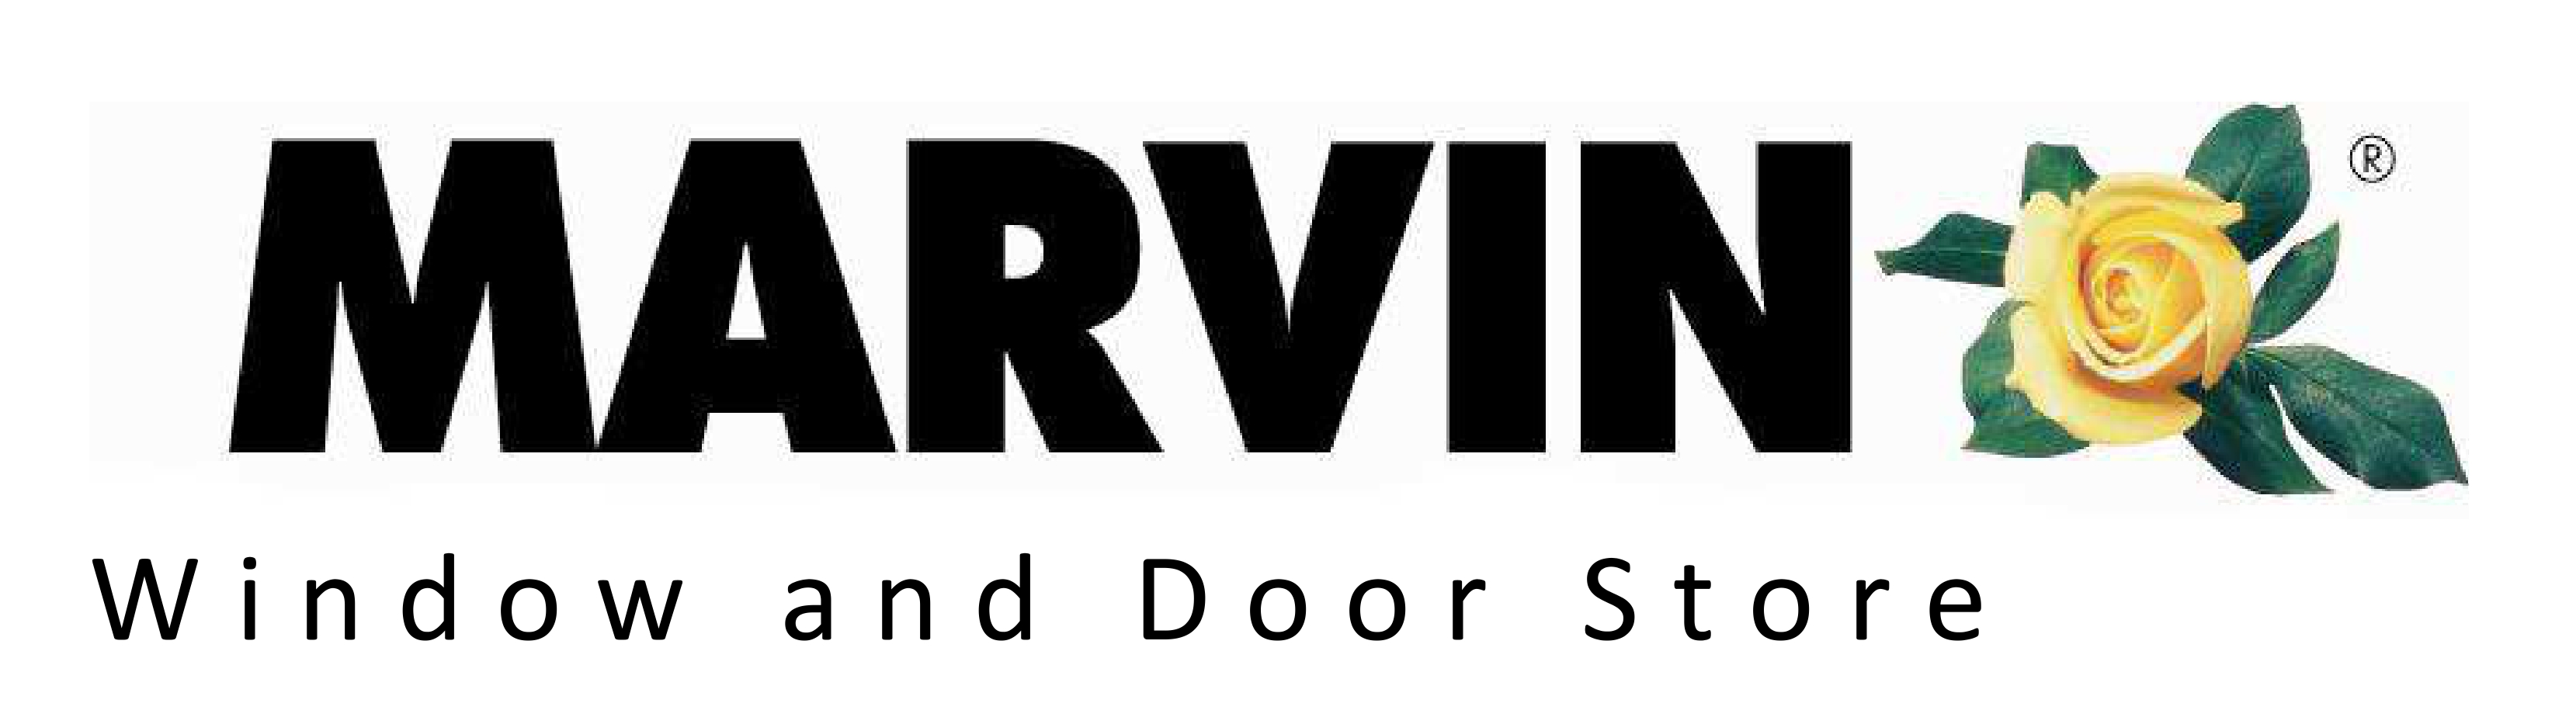 Marvin Window & Door Store